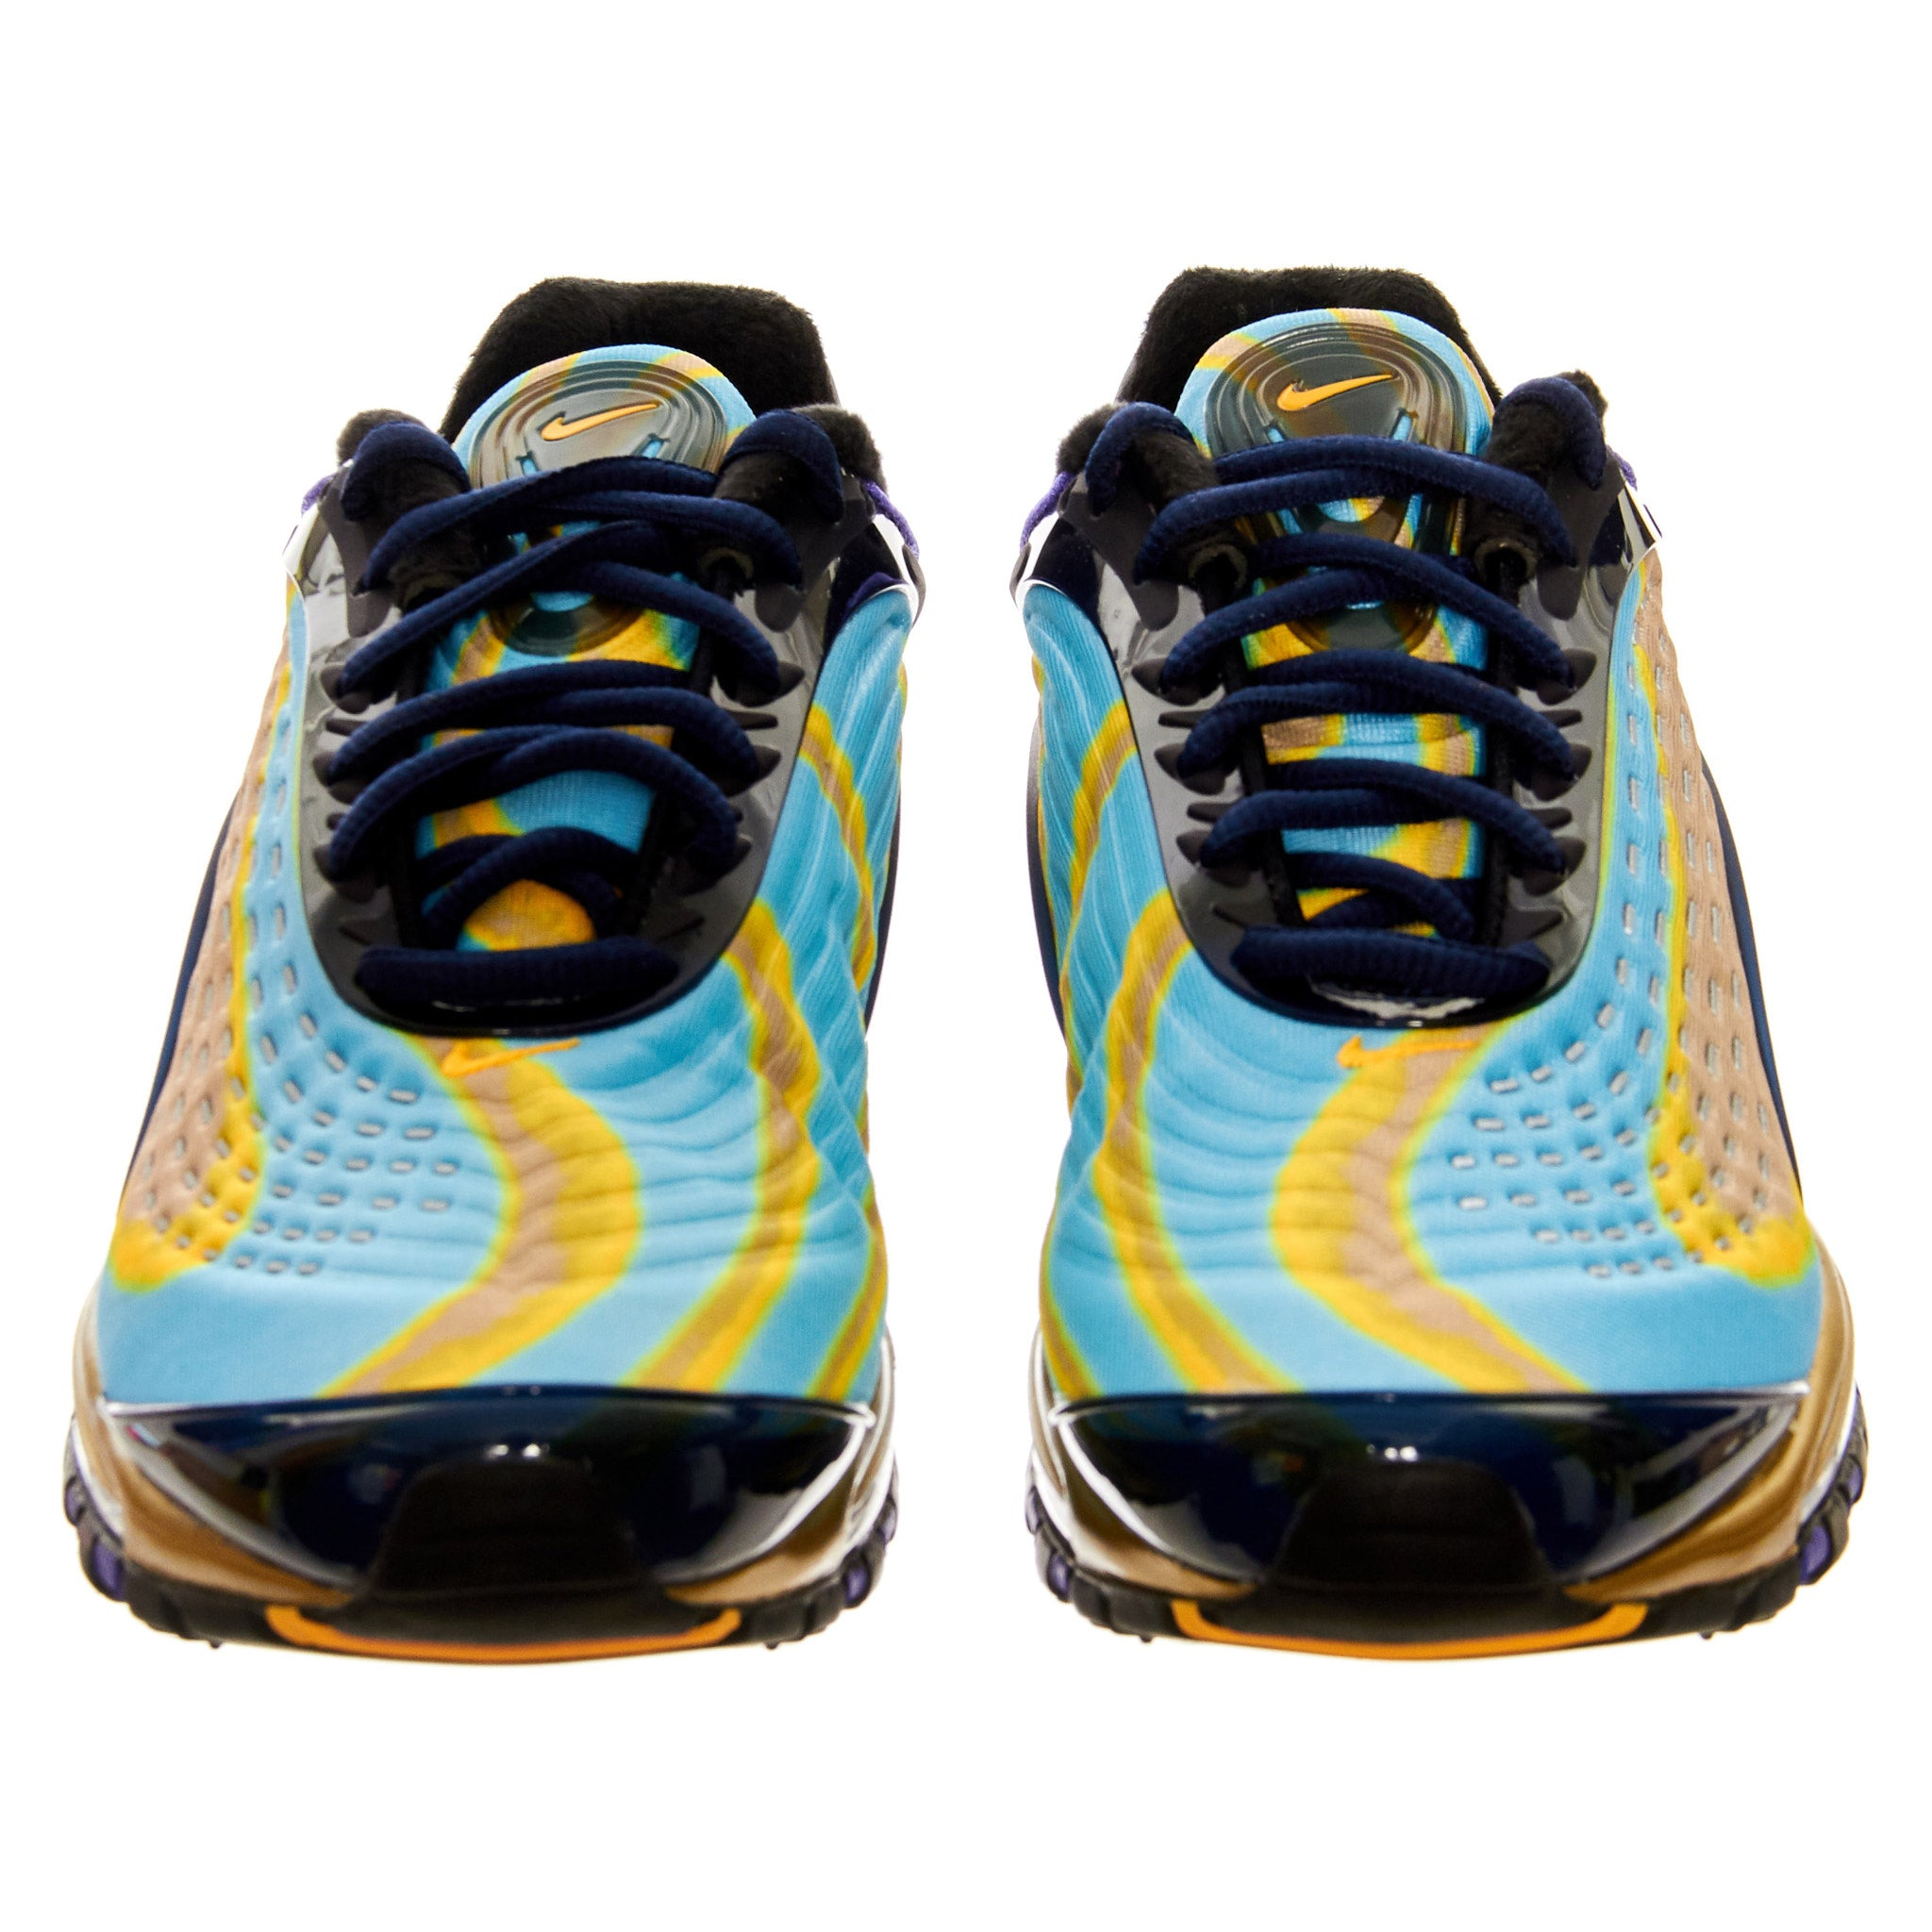 W. AIR MAX DELUXE